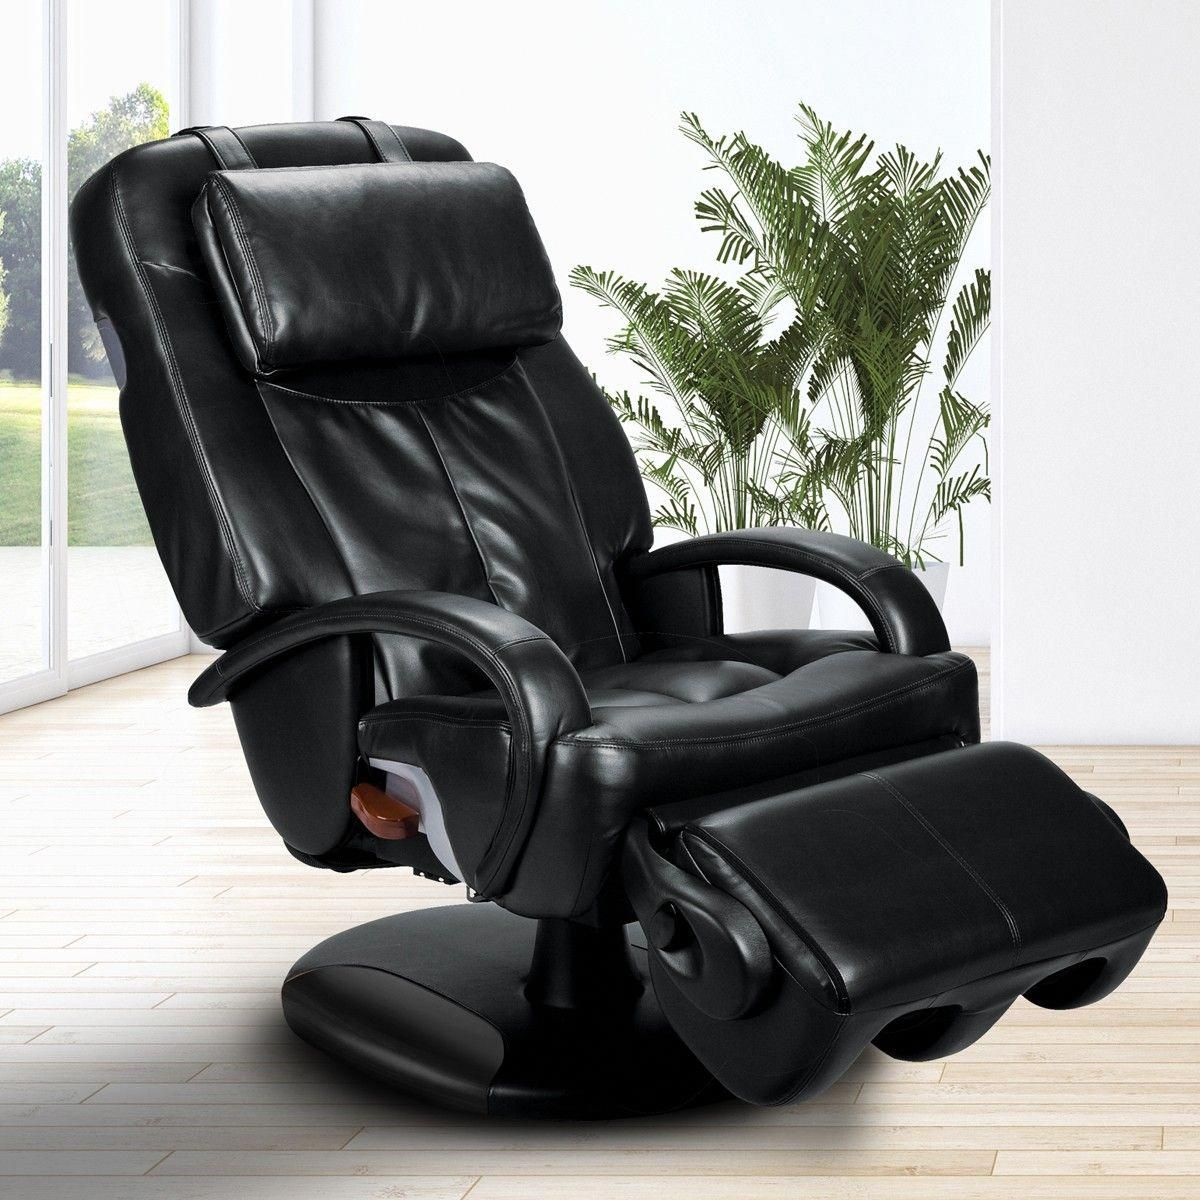 Massage Chair Your Way to the Stress of Your